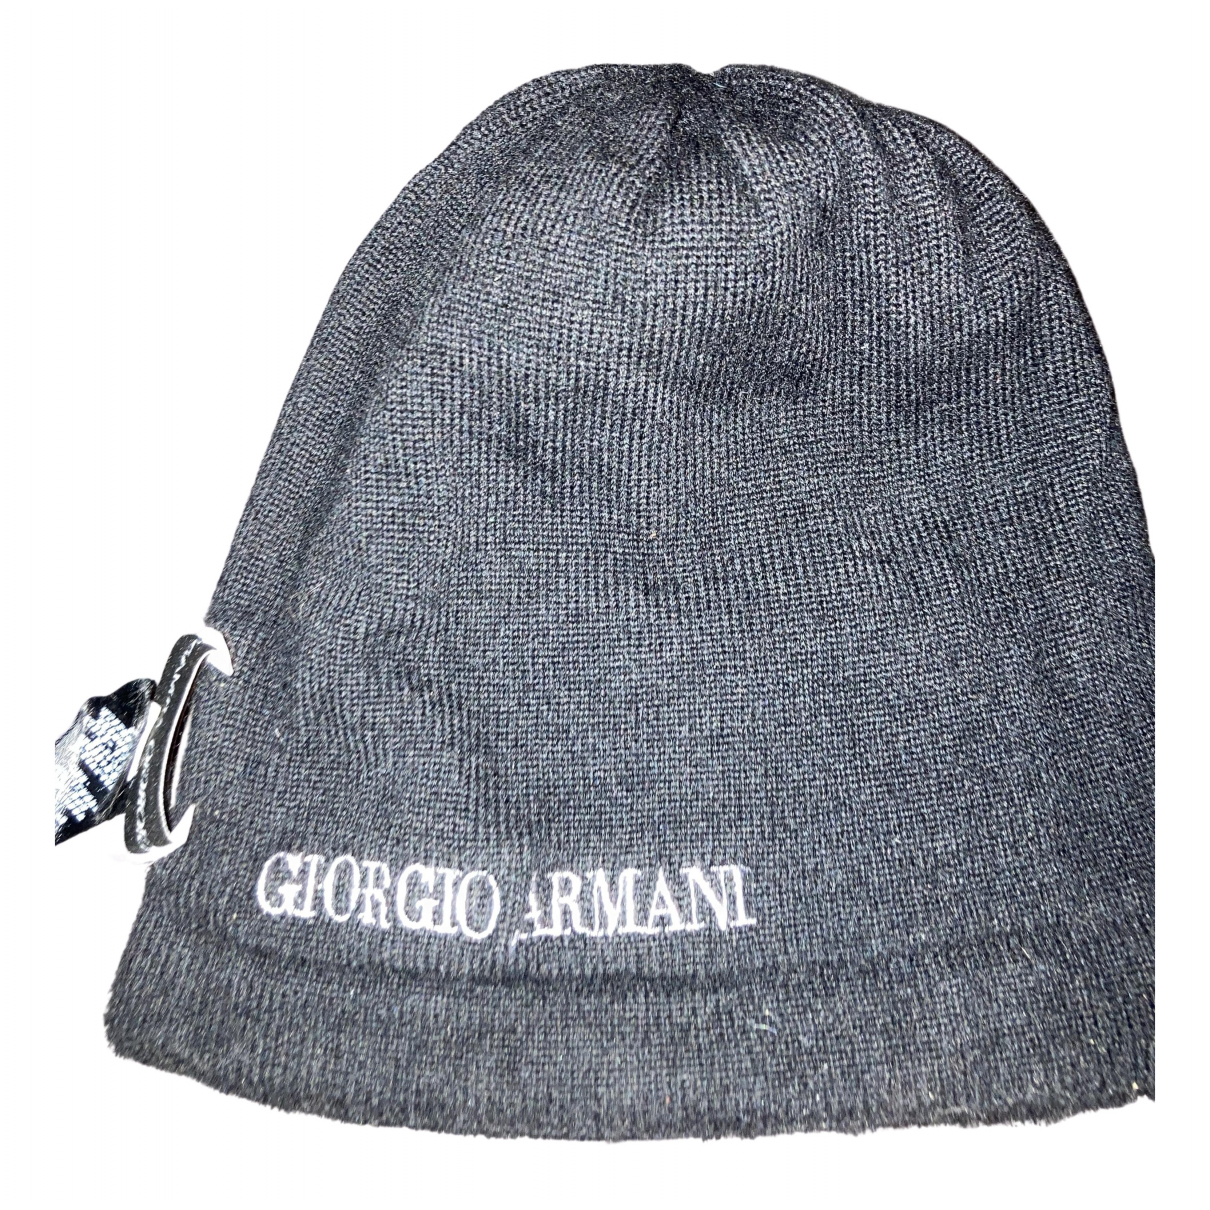 Giorgio Armani N Black Cashmere hat & pull on hat for Men M International